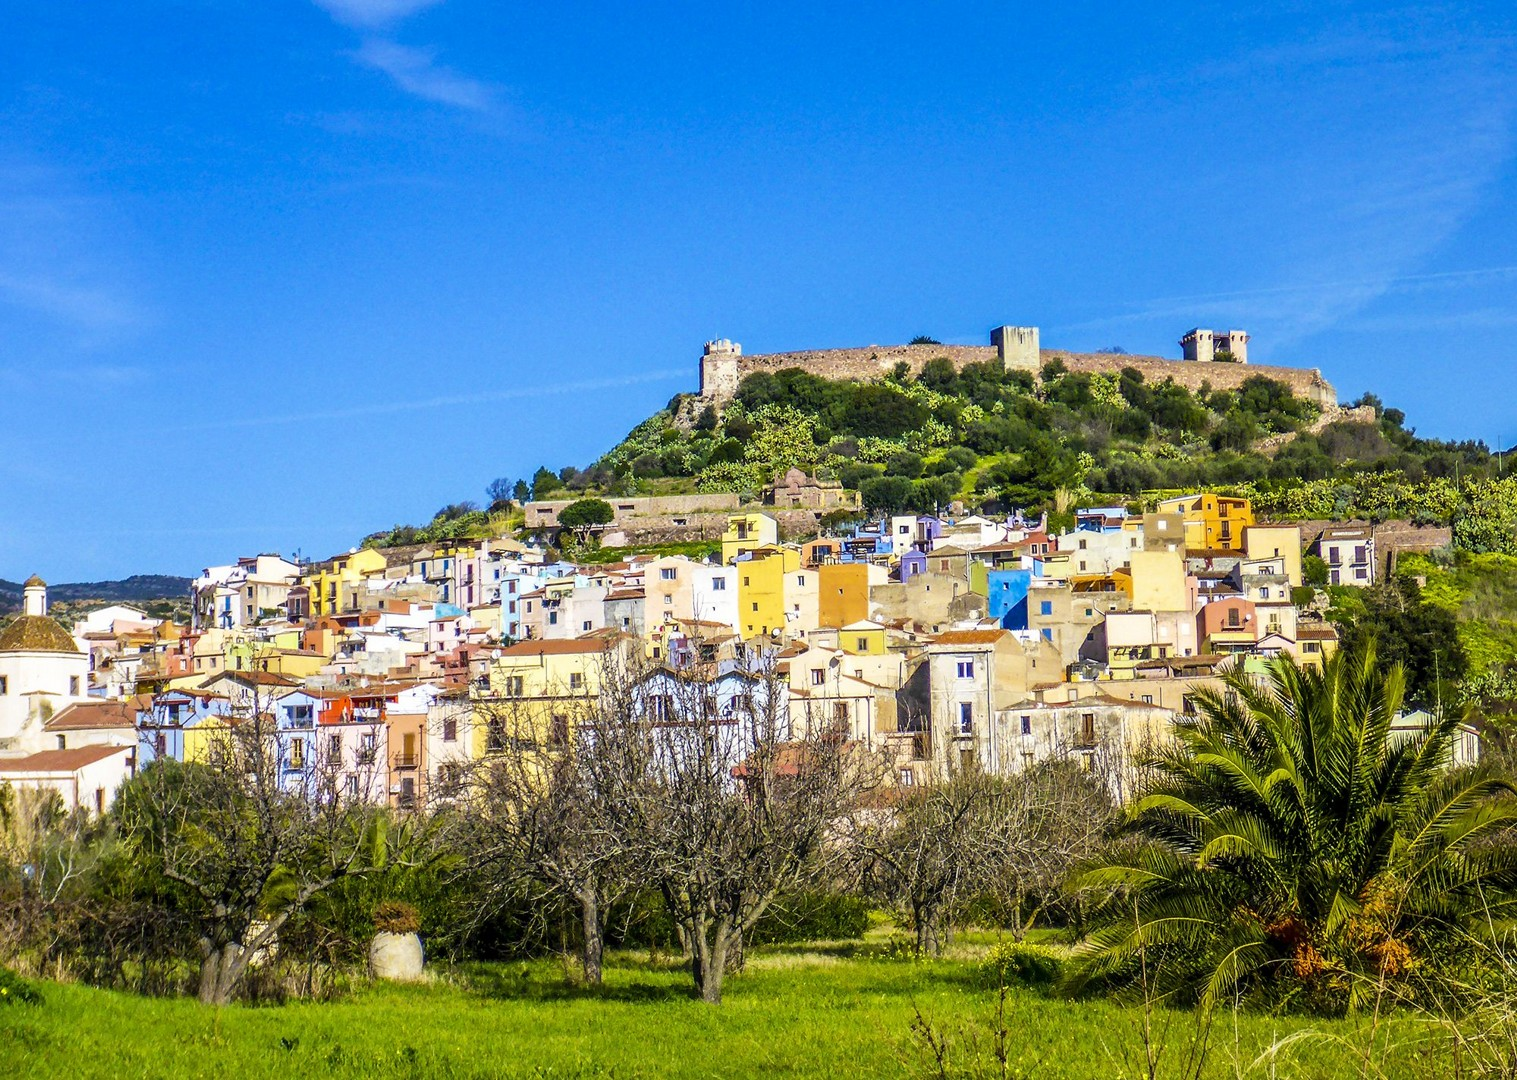 bosa-sardinia-culture-locals-experience-leisure-cycling-holiday.jpg - Italy - Sardinia - West Coast Wonders - Self-Guided Leisure Cycling Holiday - Leisure Cycling